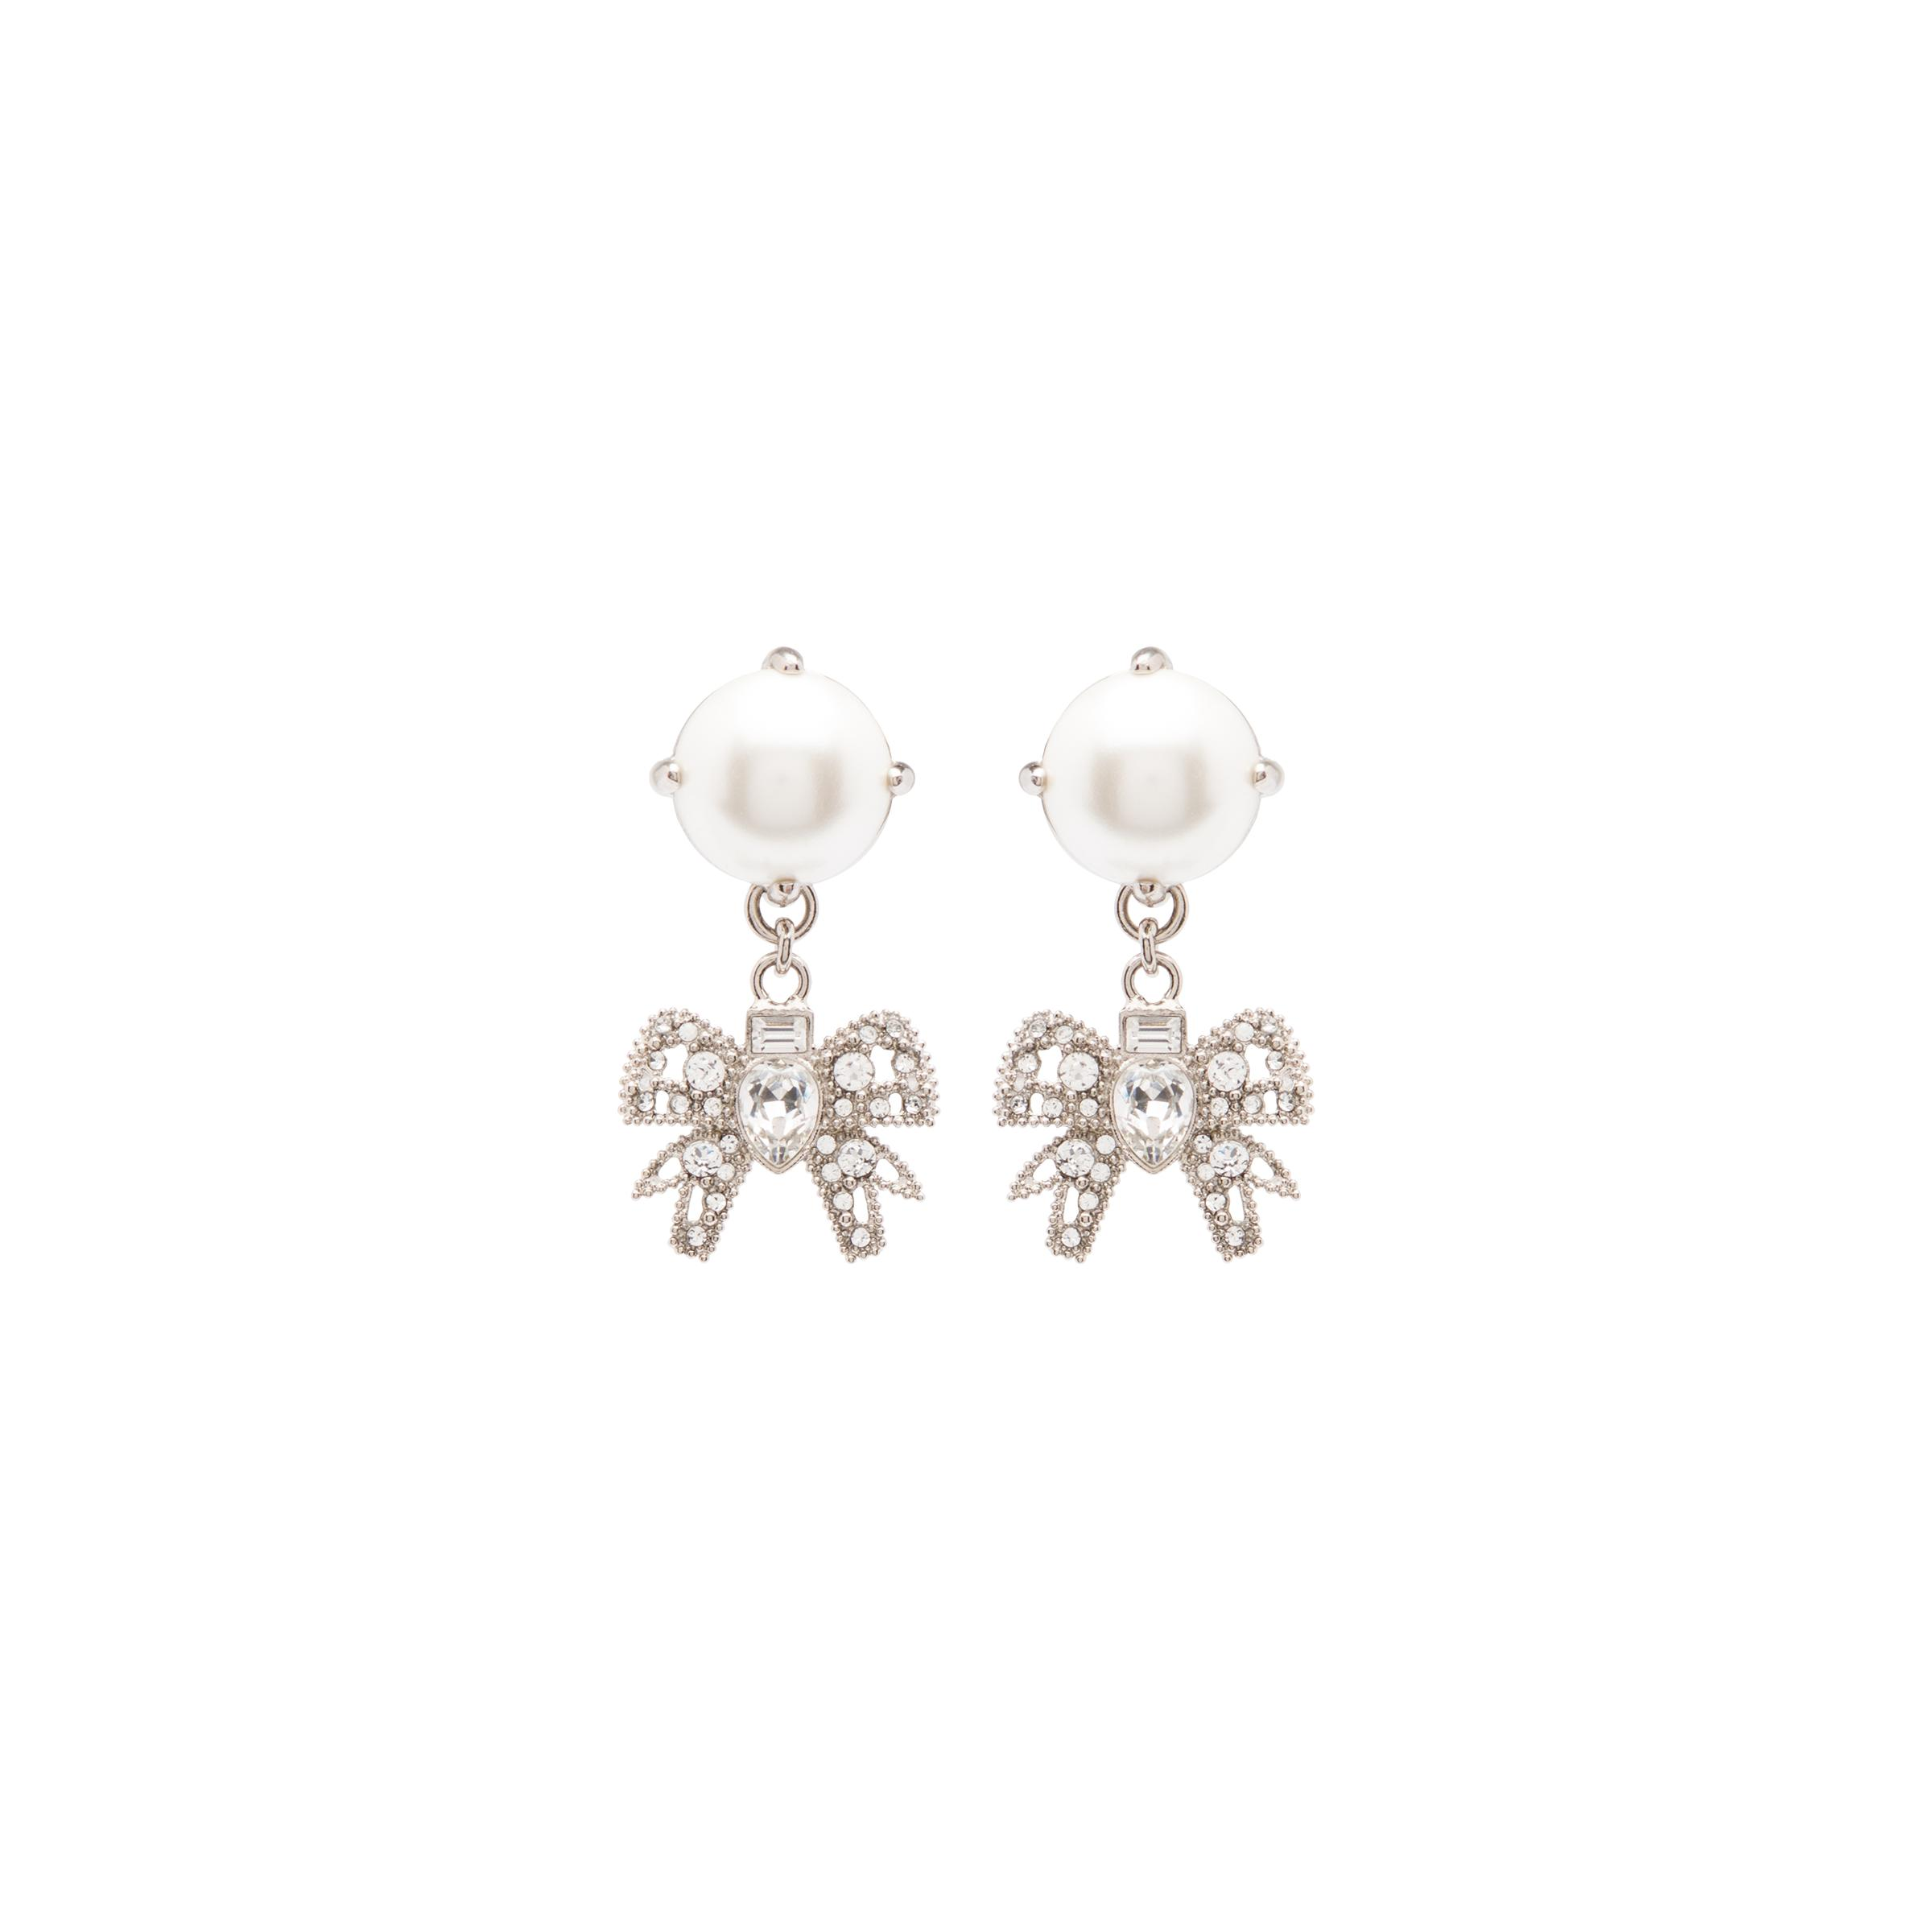 Pendant Earrings With Crystals And Pearls Women Cream/cristal